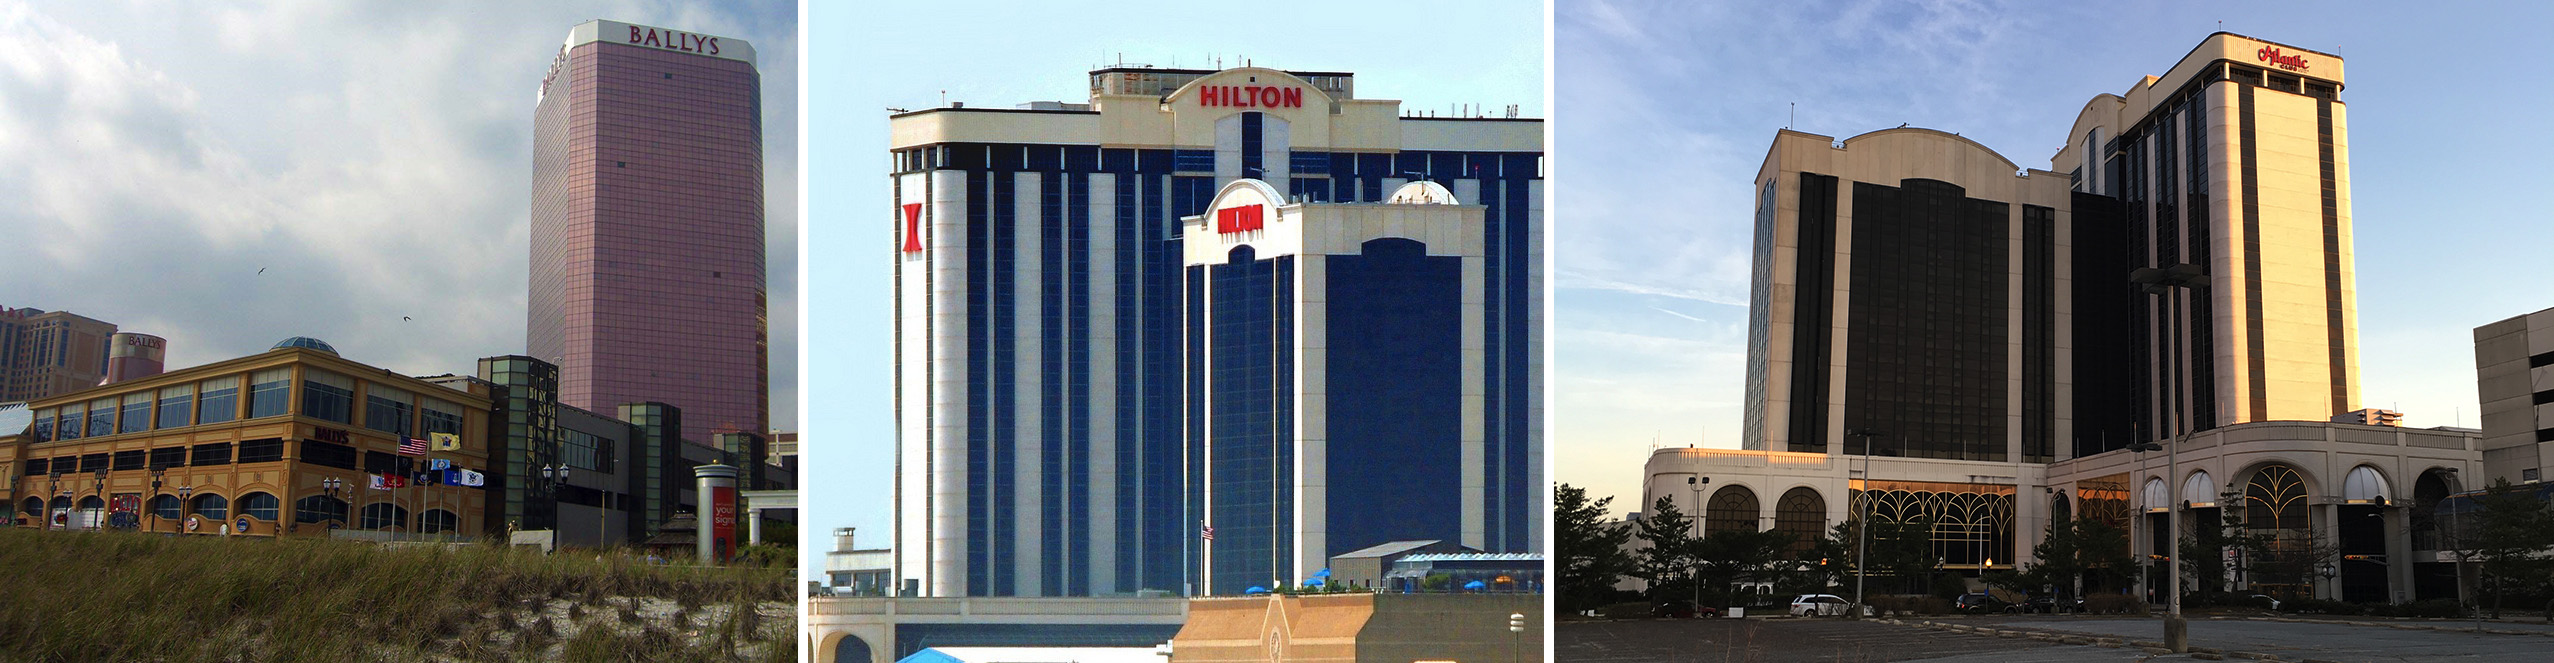 Atlantic Club Hotel Underwent Many Names Over The Years Including Bally S Hilton And Finally